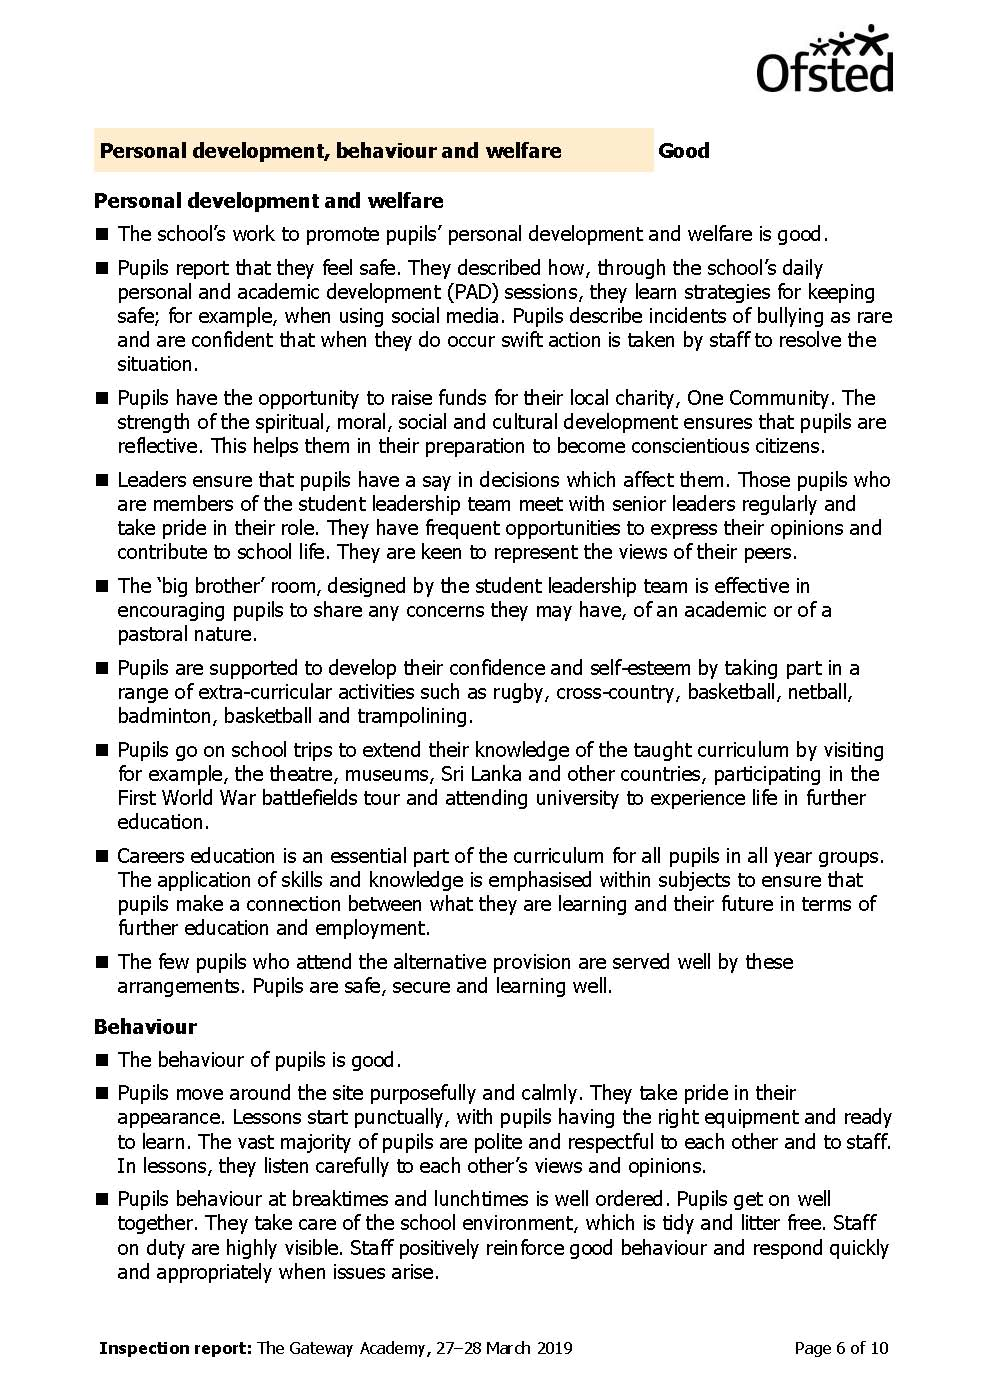 The Gateway Aacdemy Ofsted Report April 2019_Page_06